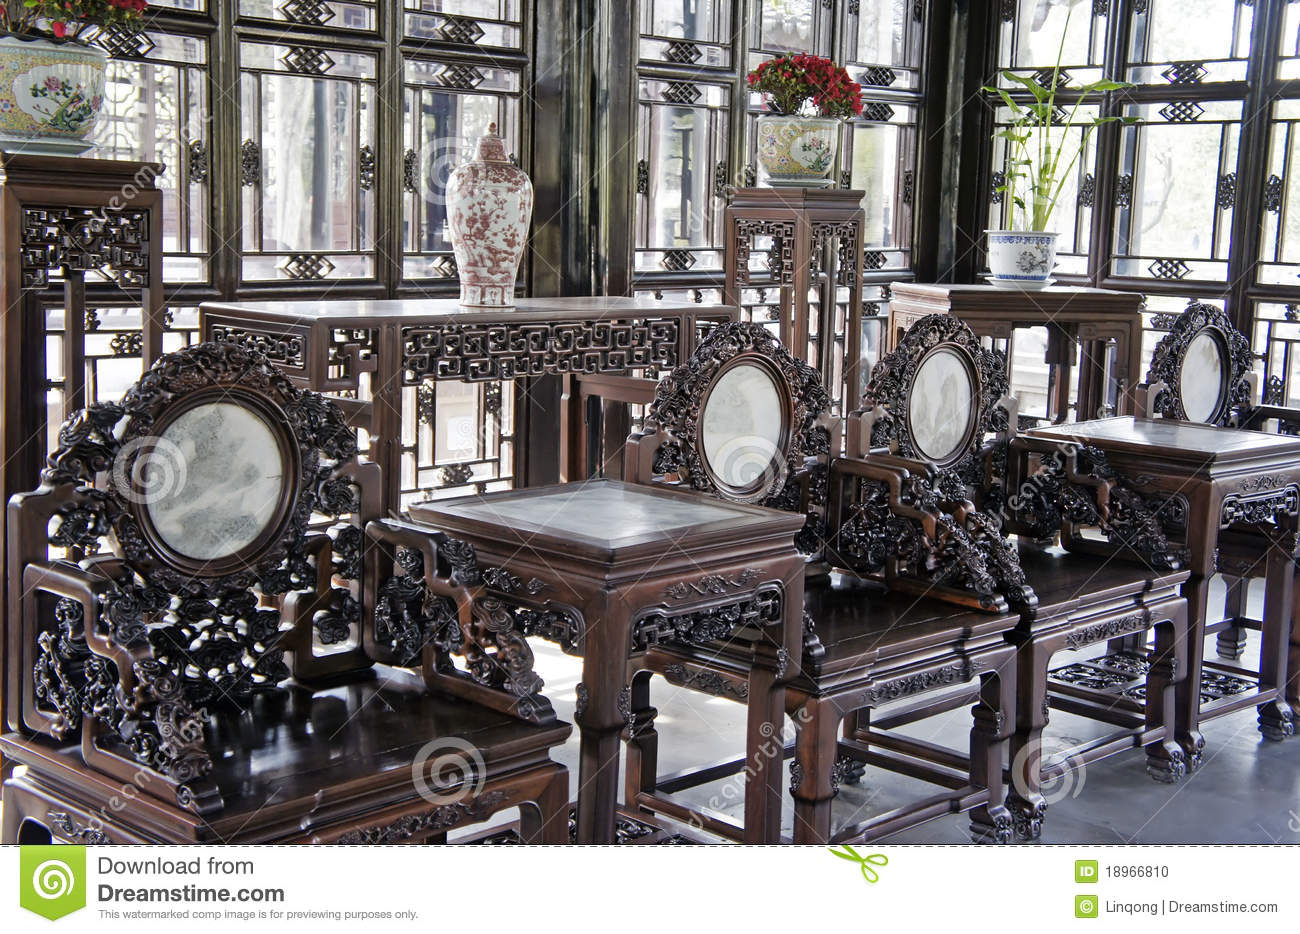 - Chinese Antique Furniture Stock Photo. Image Of Culture - 18966810